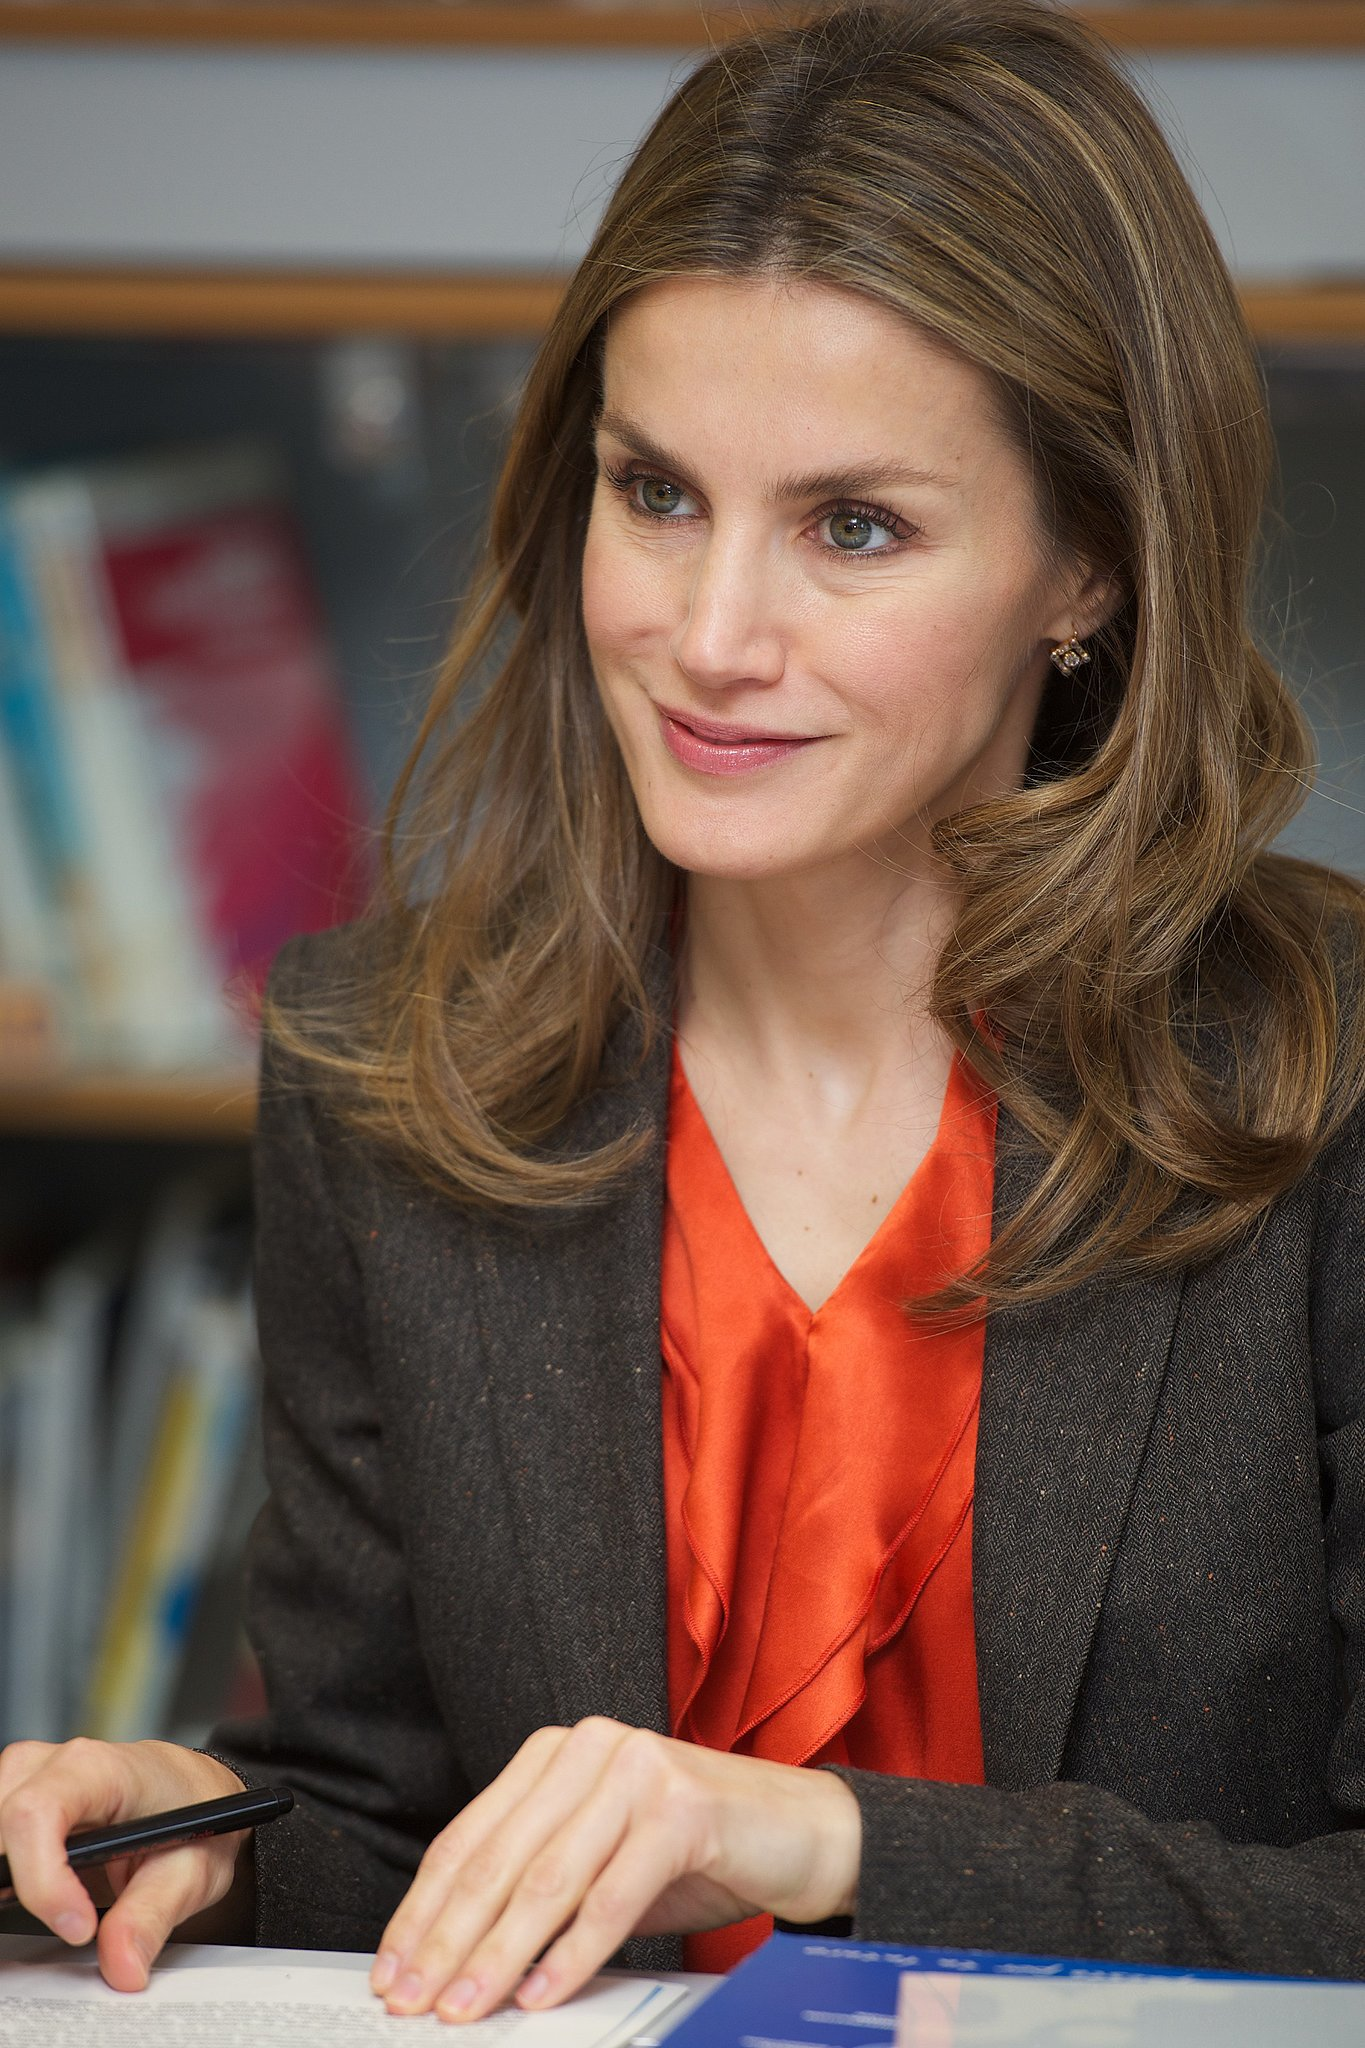 of spain queen letizia of spain photo 708954 0 vote 1365x2048